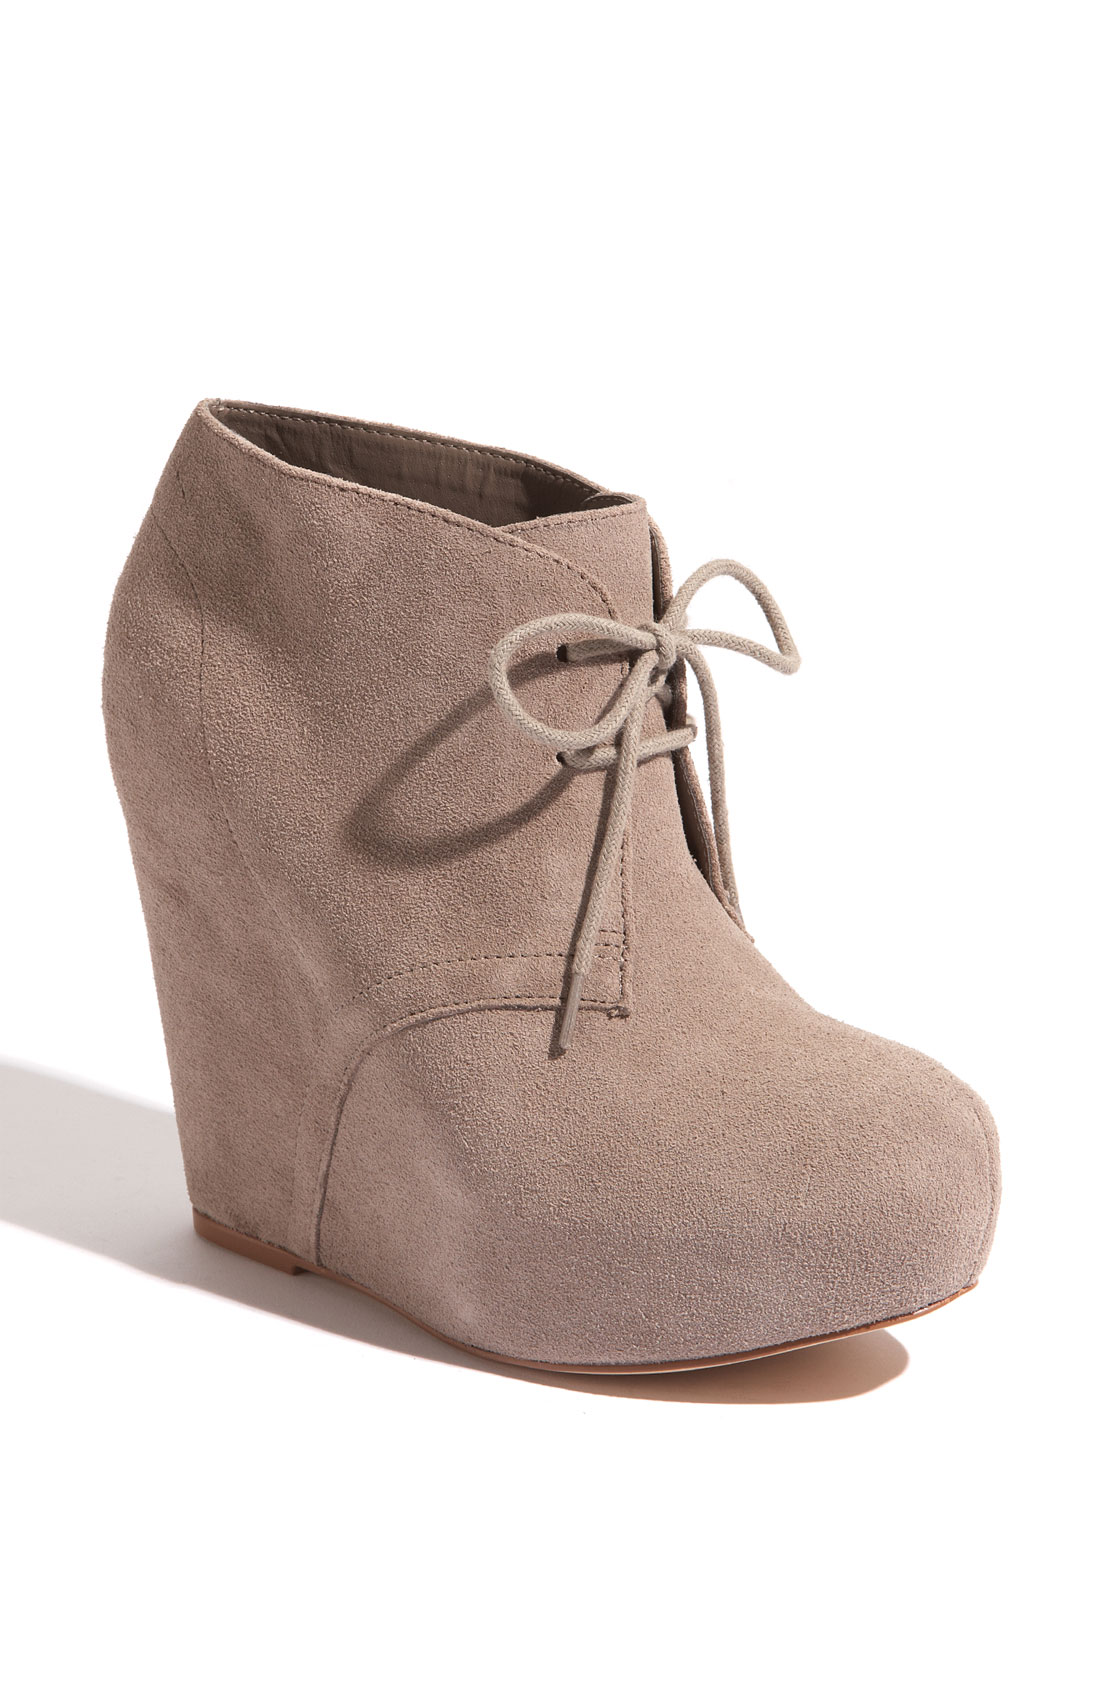 Shop our collection of booties online at Macy's. Browse the latest trends and view our great selection of women's ankle boots, wedge booties, peep toe booties & more.